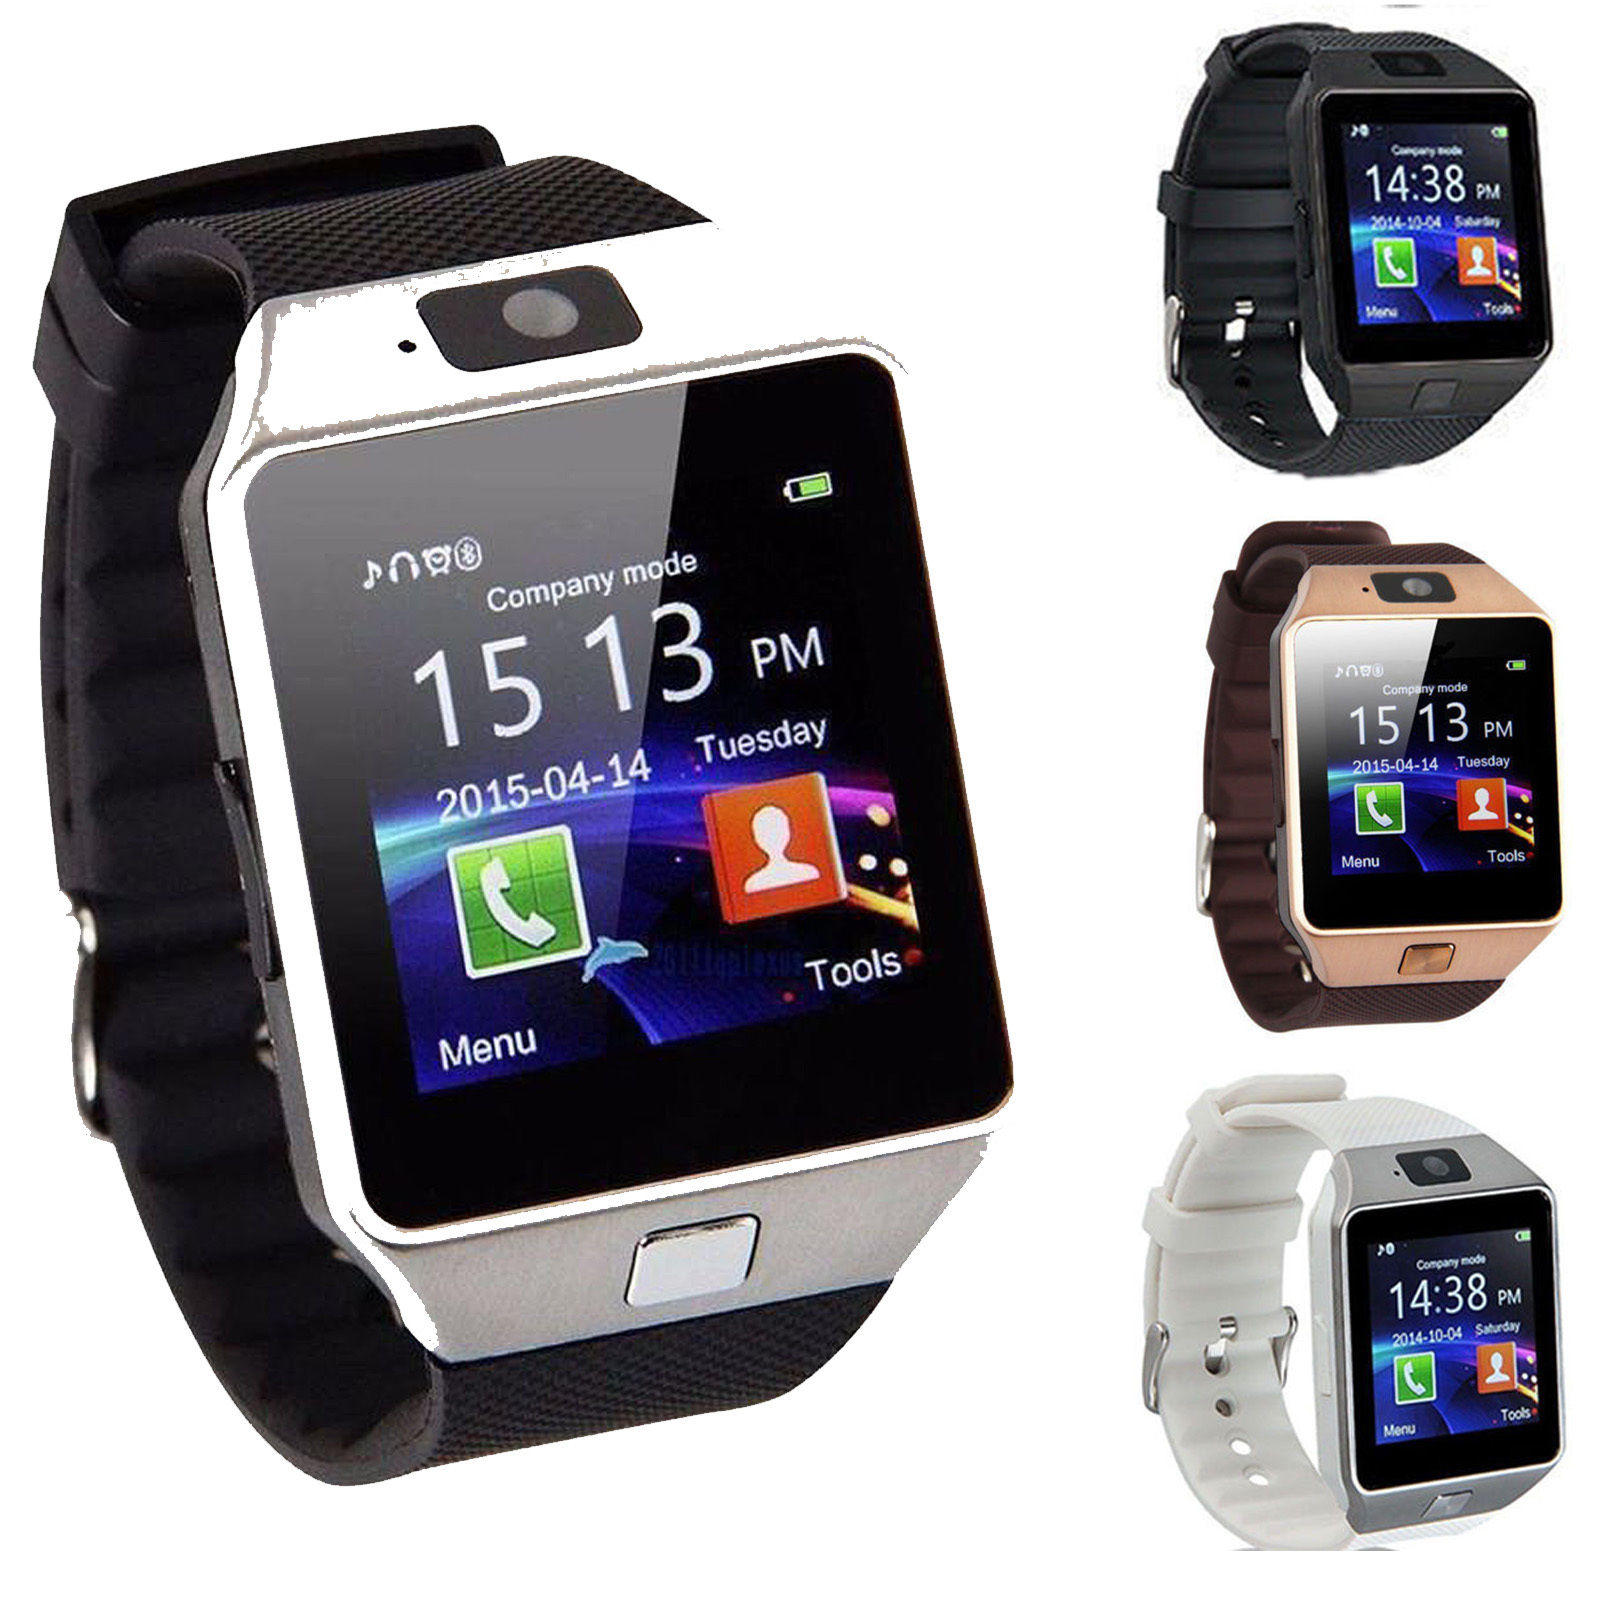 watch apple availability selling i will telus series phone the watches start header december wrist on